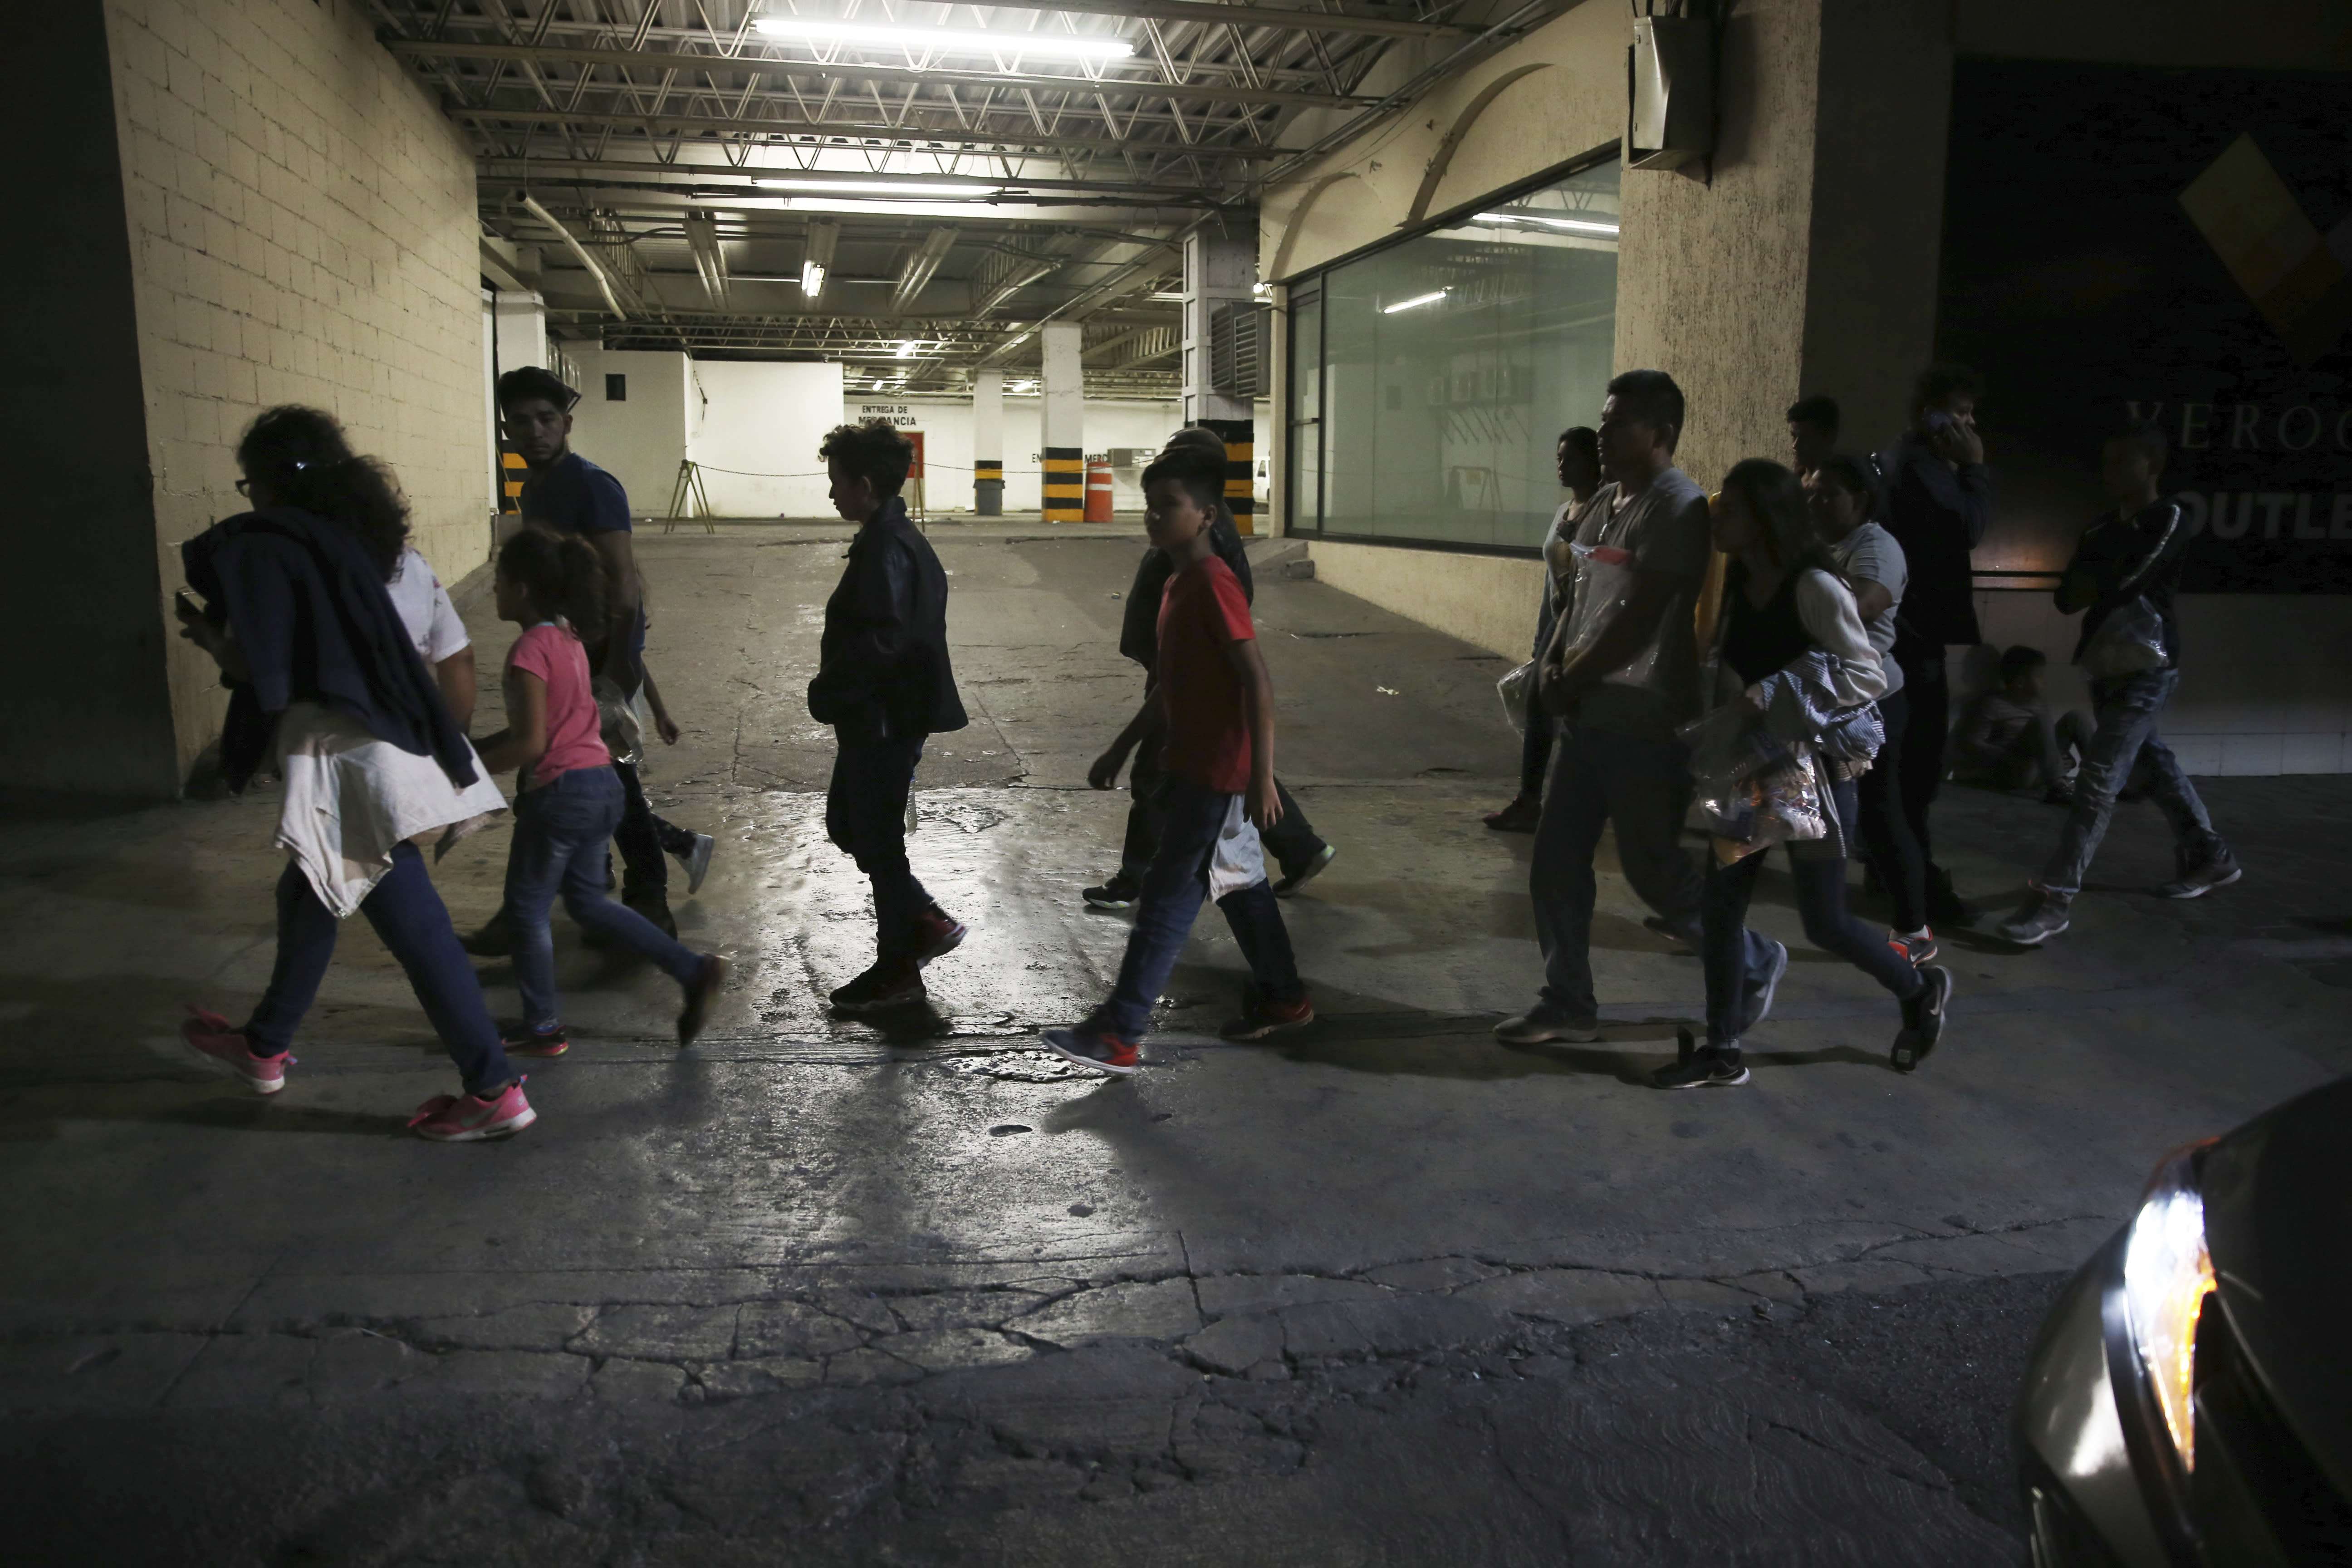 In this July 18, 2019 photo, migrants who have just been bused by Mexican Authorities from Nuevo Laredo to Monterrey, walk off the bus into the street in Monterrey, Mexico. All those taken to Monterrey who spoke with AP said that they had not asked for asylum in the US and some asked to be returned to their home countries, but were told that going to Mexico or remaining in detention were the only options. (AP Photo/Marco Ugarte)